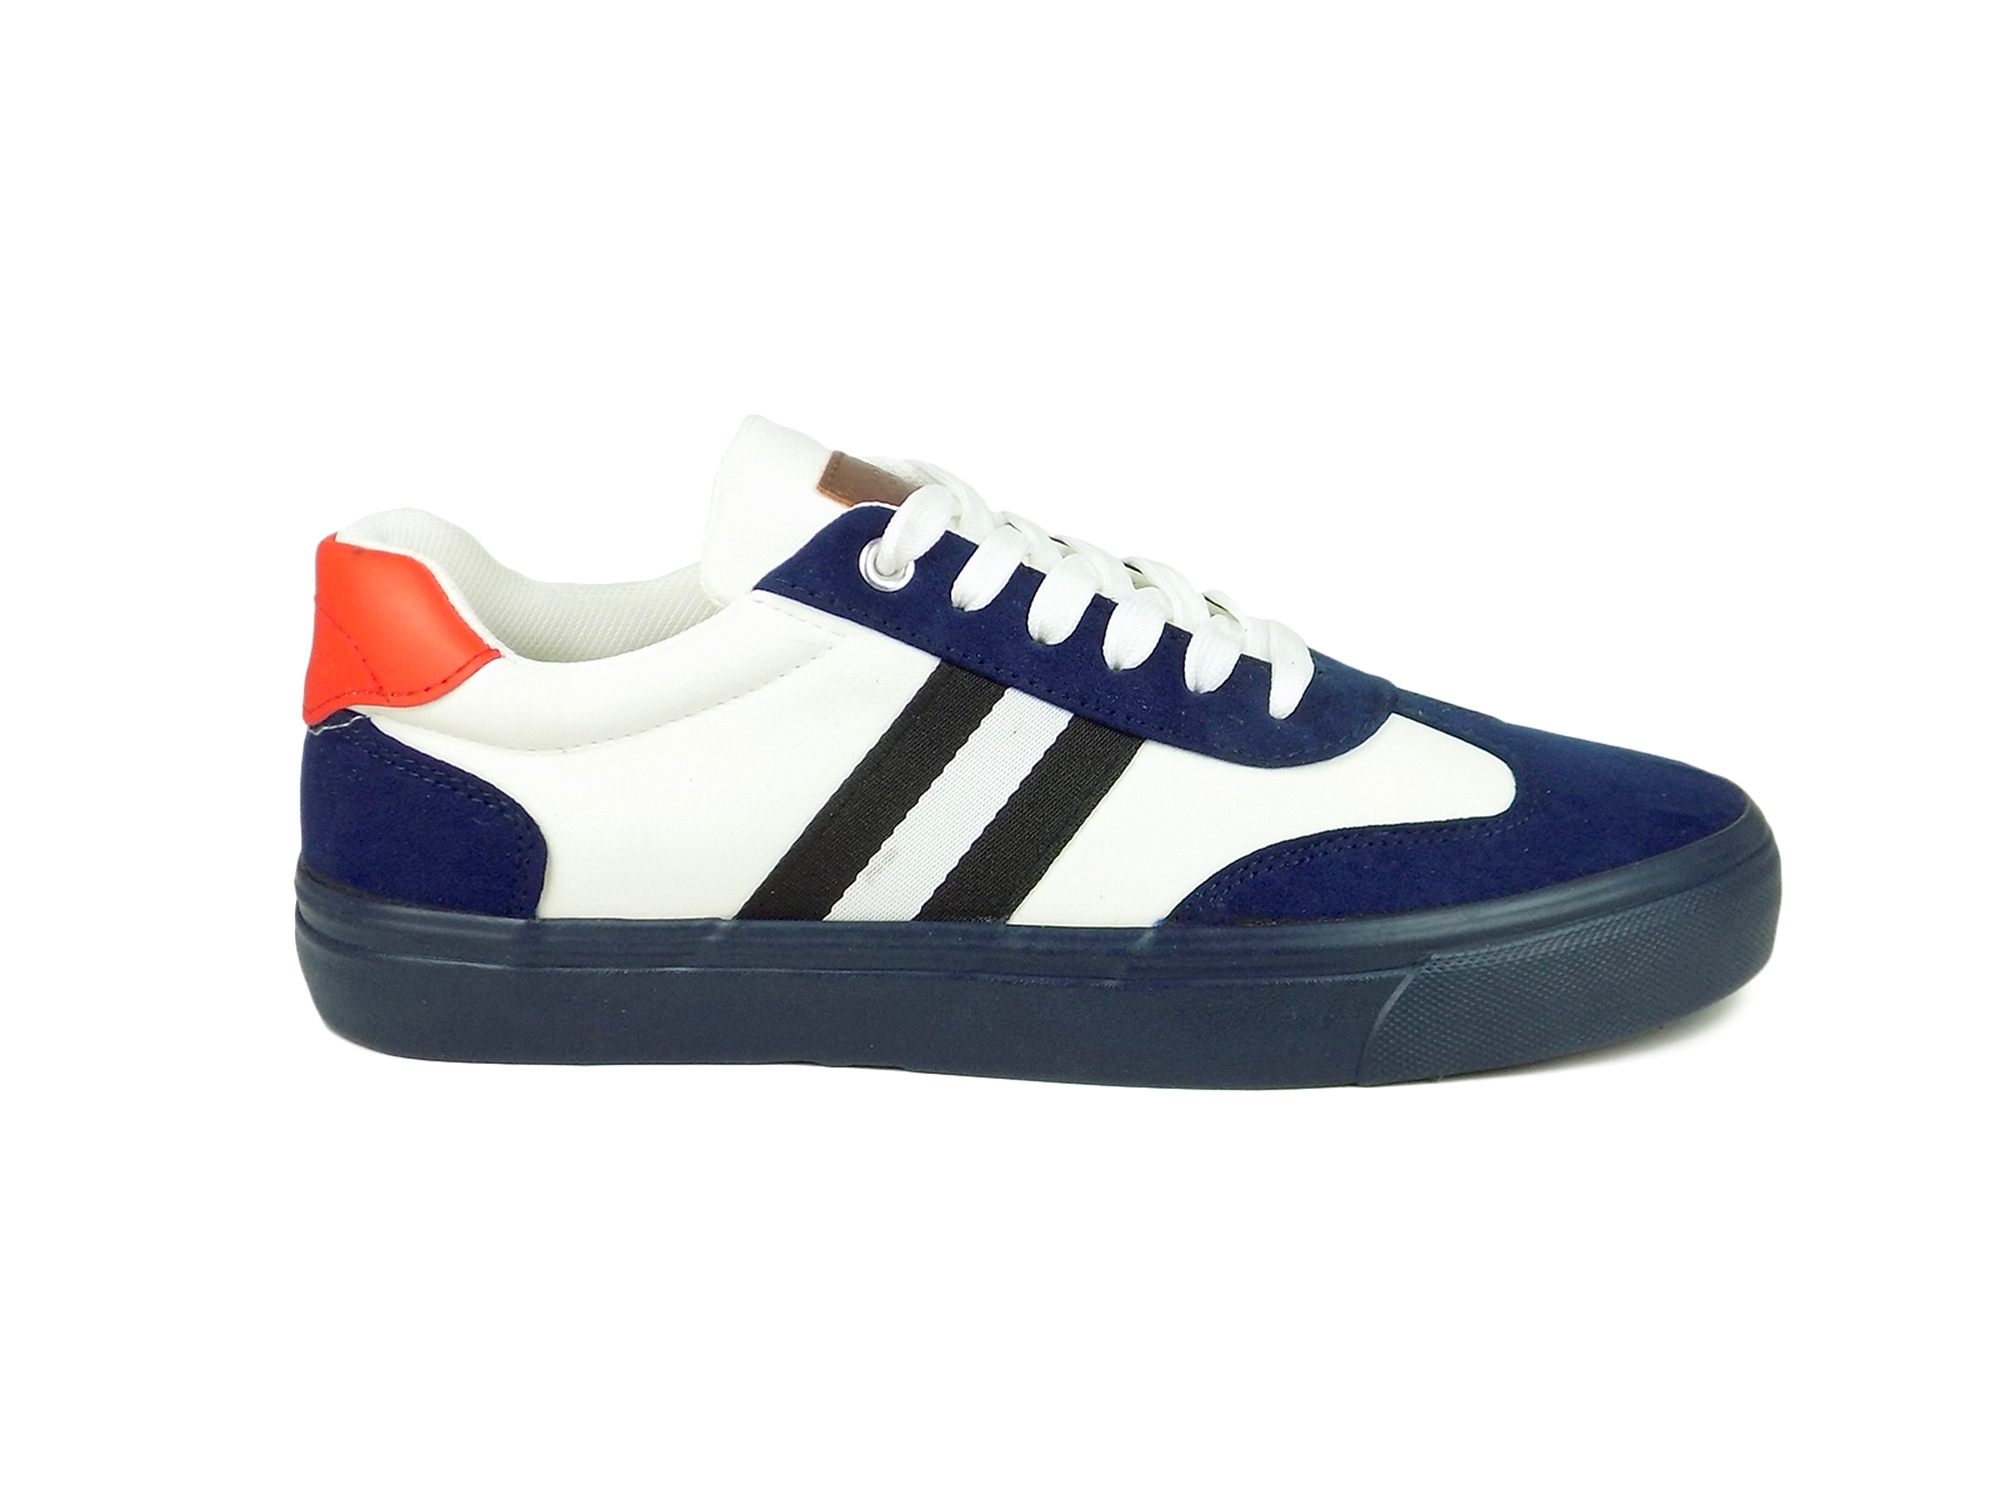 36ae93851f8 Ripley Super Sneaker Series Blue Leatherette Casual Shoes